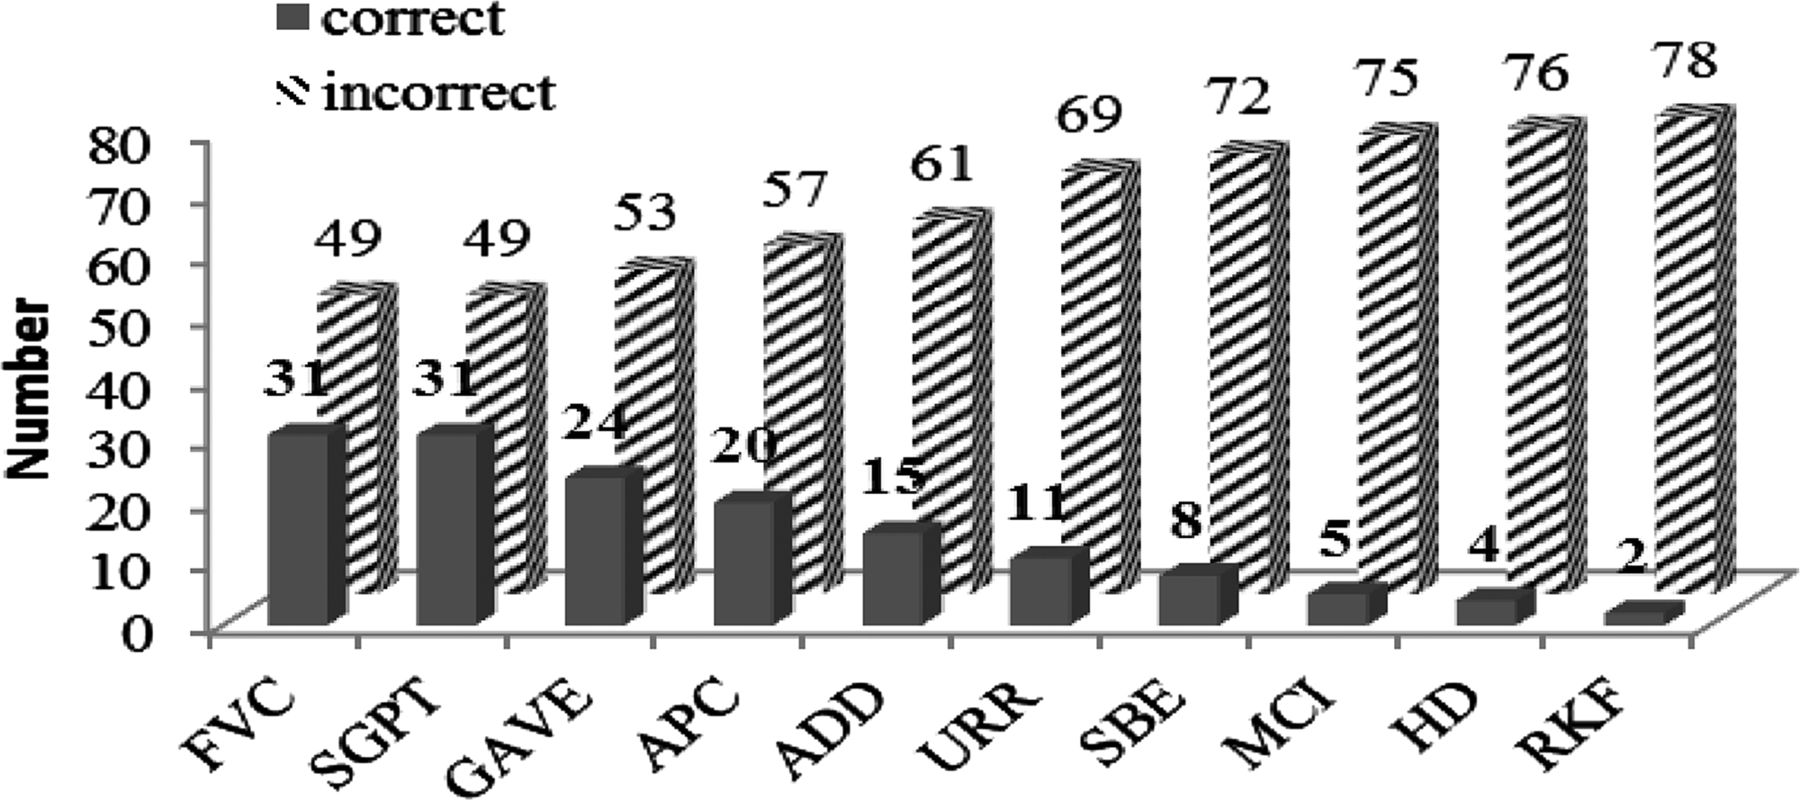 Use of medical abbreviations and acronyms knowledge among medical download figure biocorpaavc Image collections